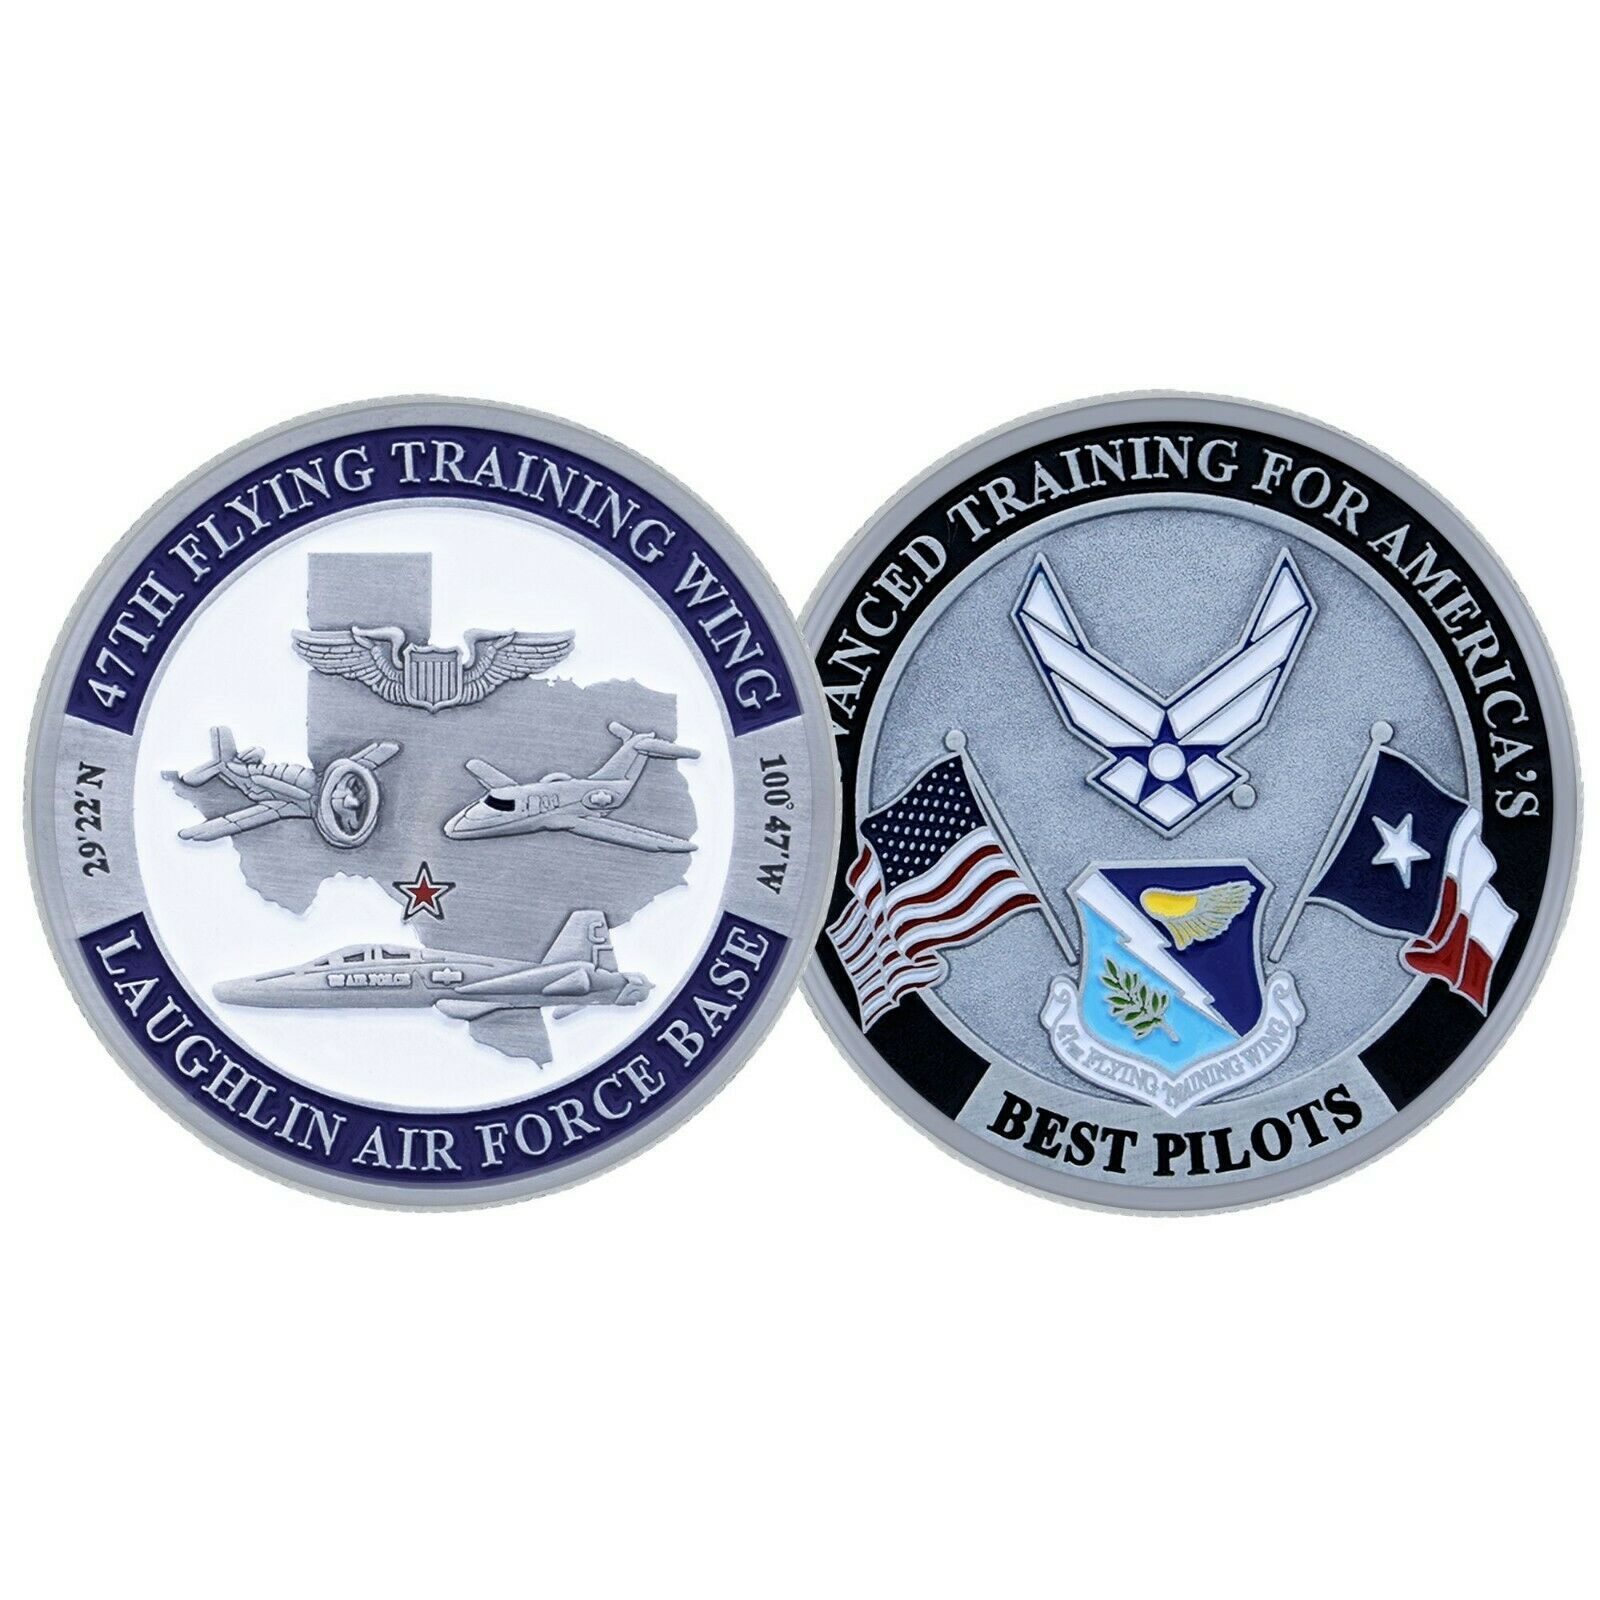 "LAUGHLIN AIR FORCE BASE BEST PILOTS 1.75"" CHALLENGE COIN"